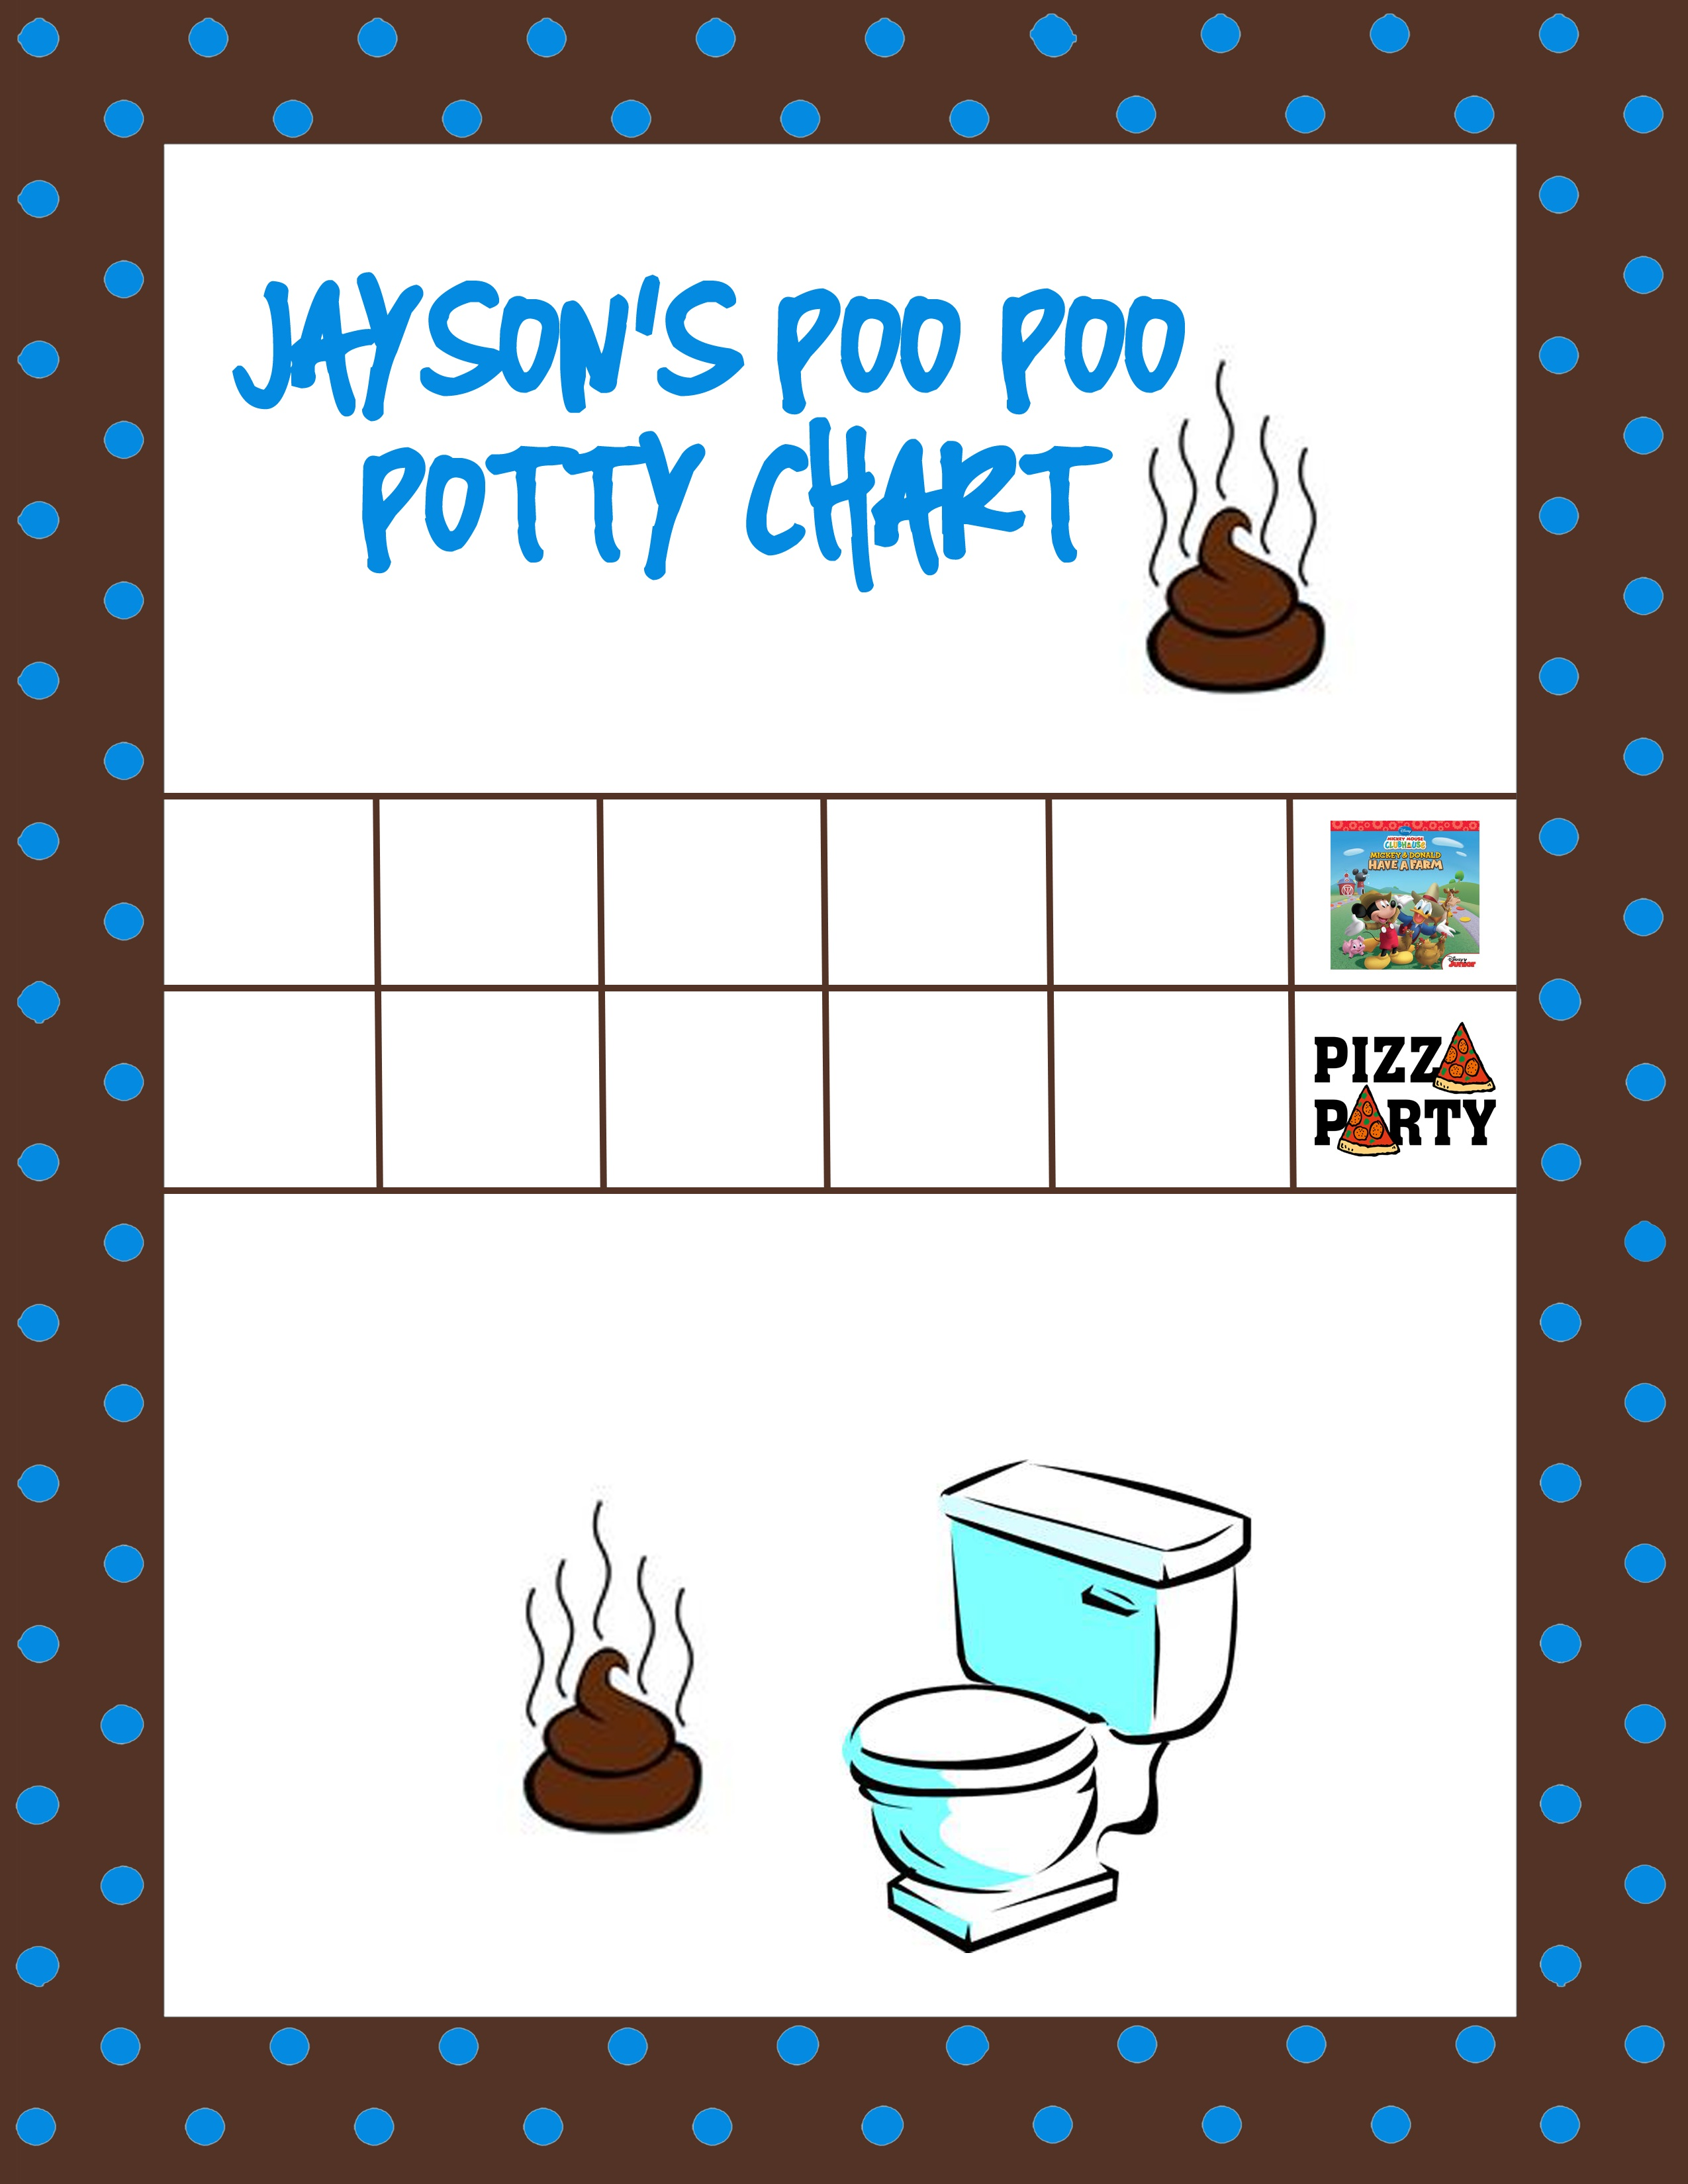 Poop chart for potty training video